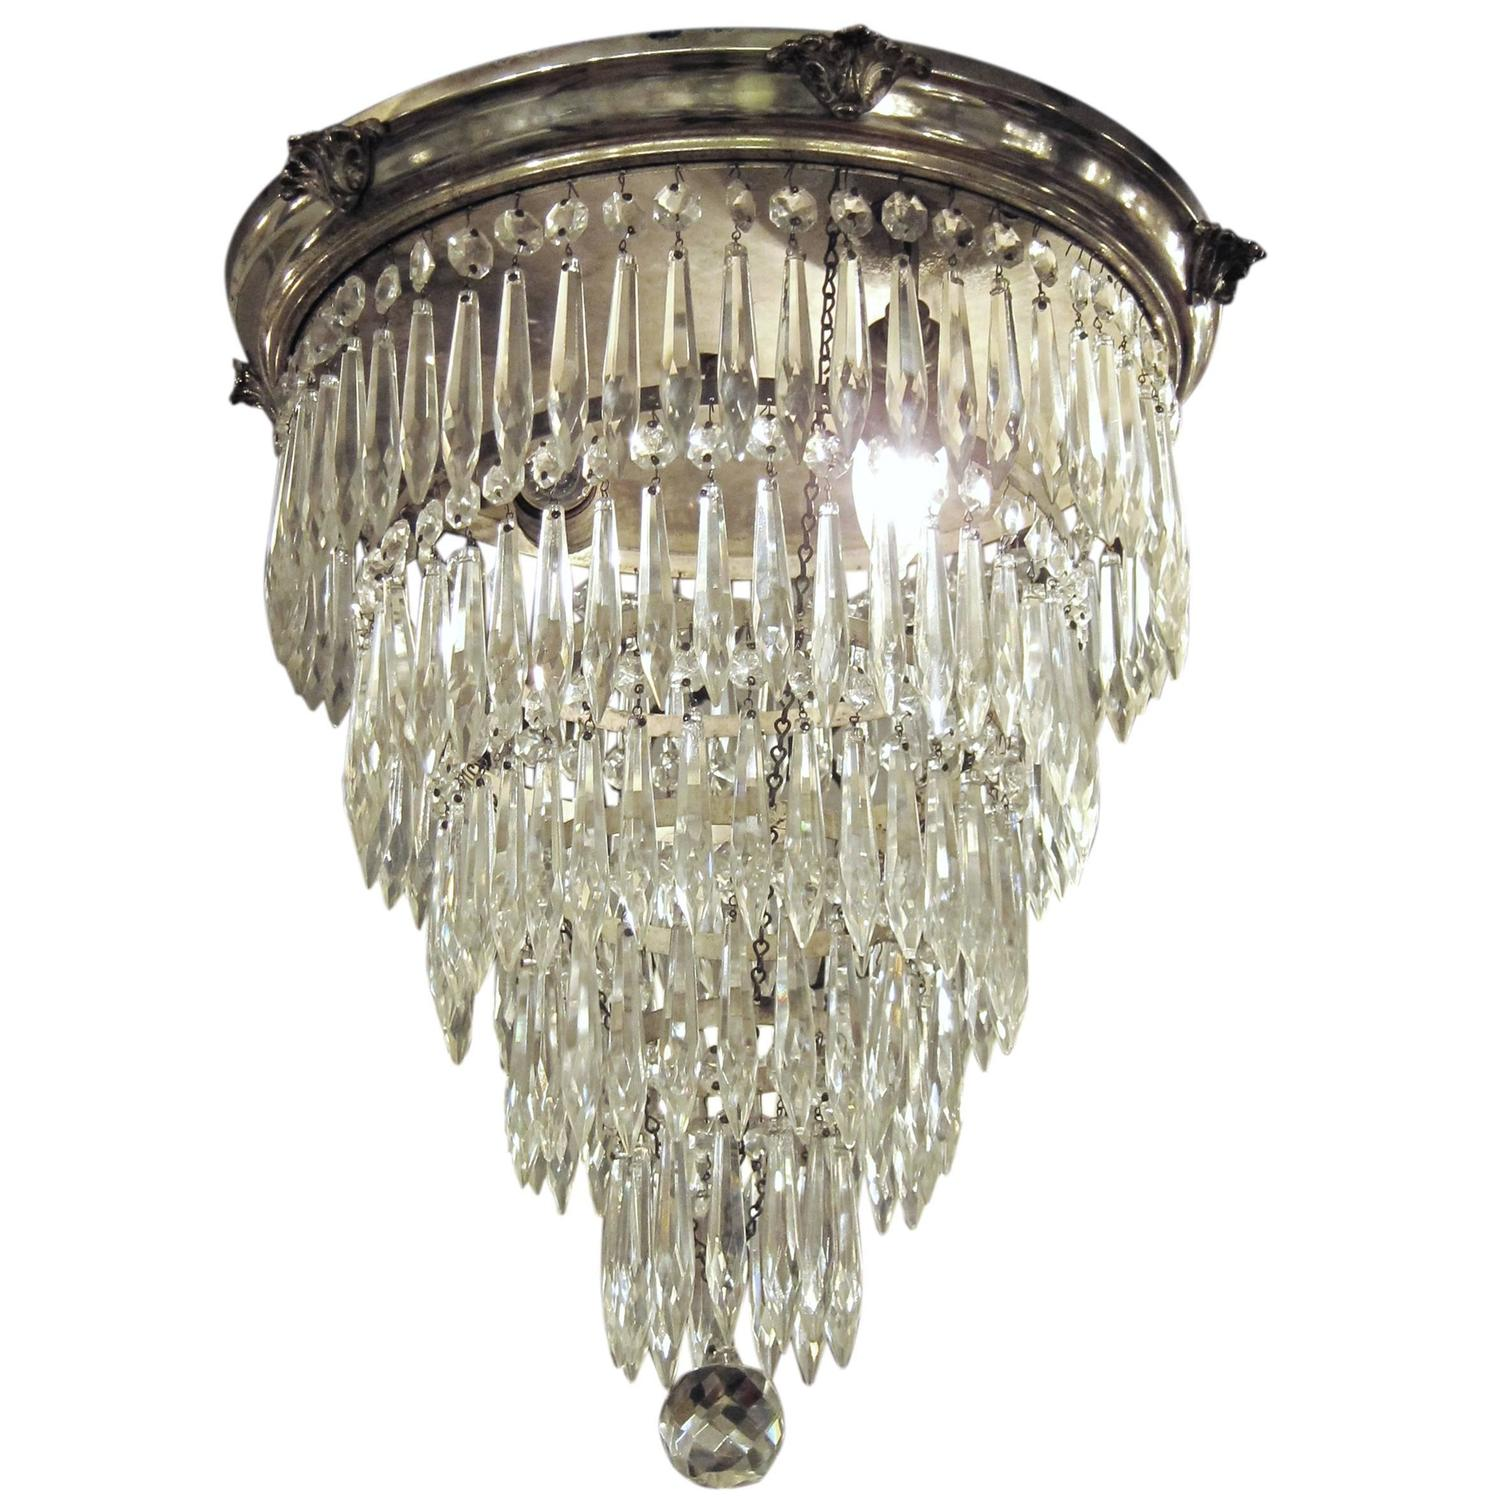 1920s Silver Plated Crystal Wedding Cake Flush Mount Chandelier With Five Tiers At 1stdibs